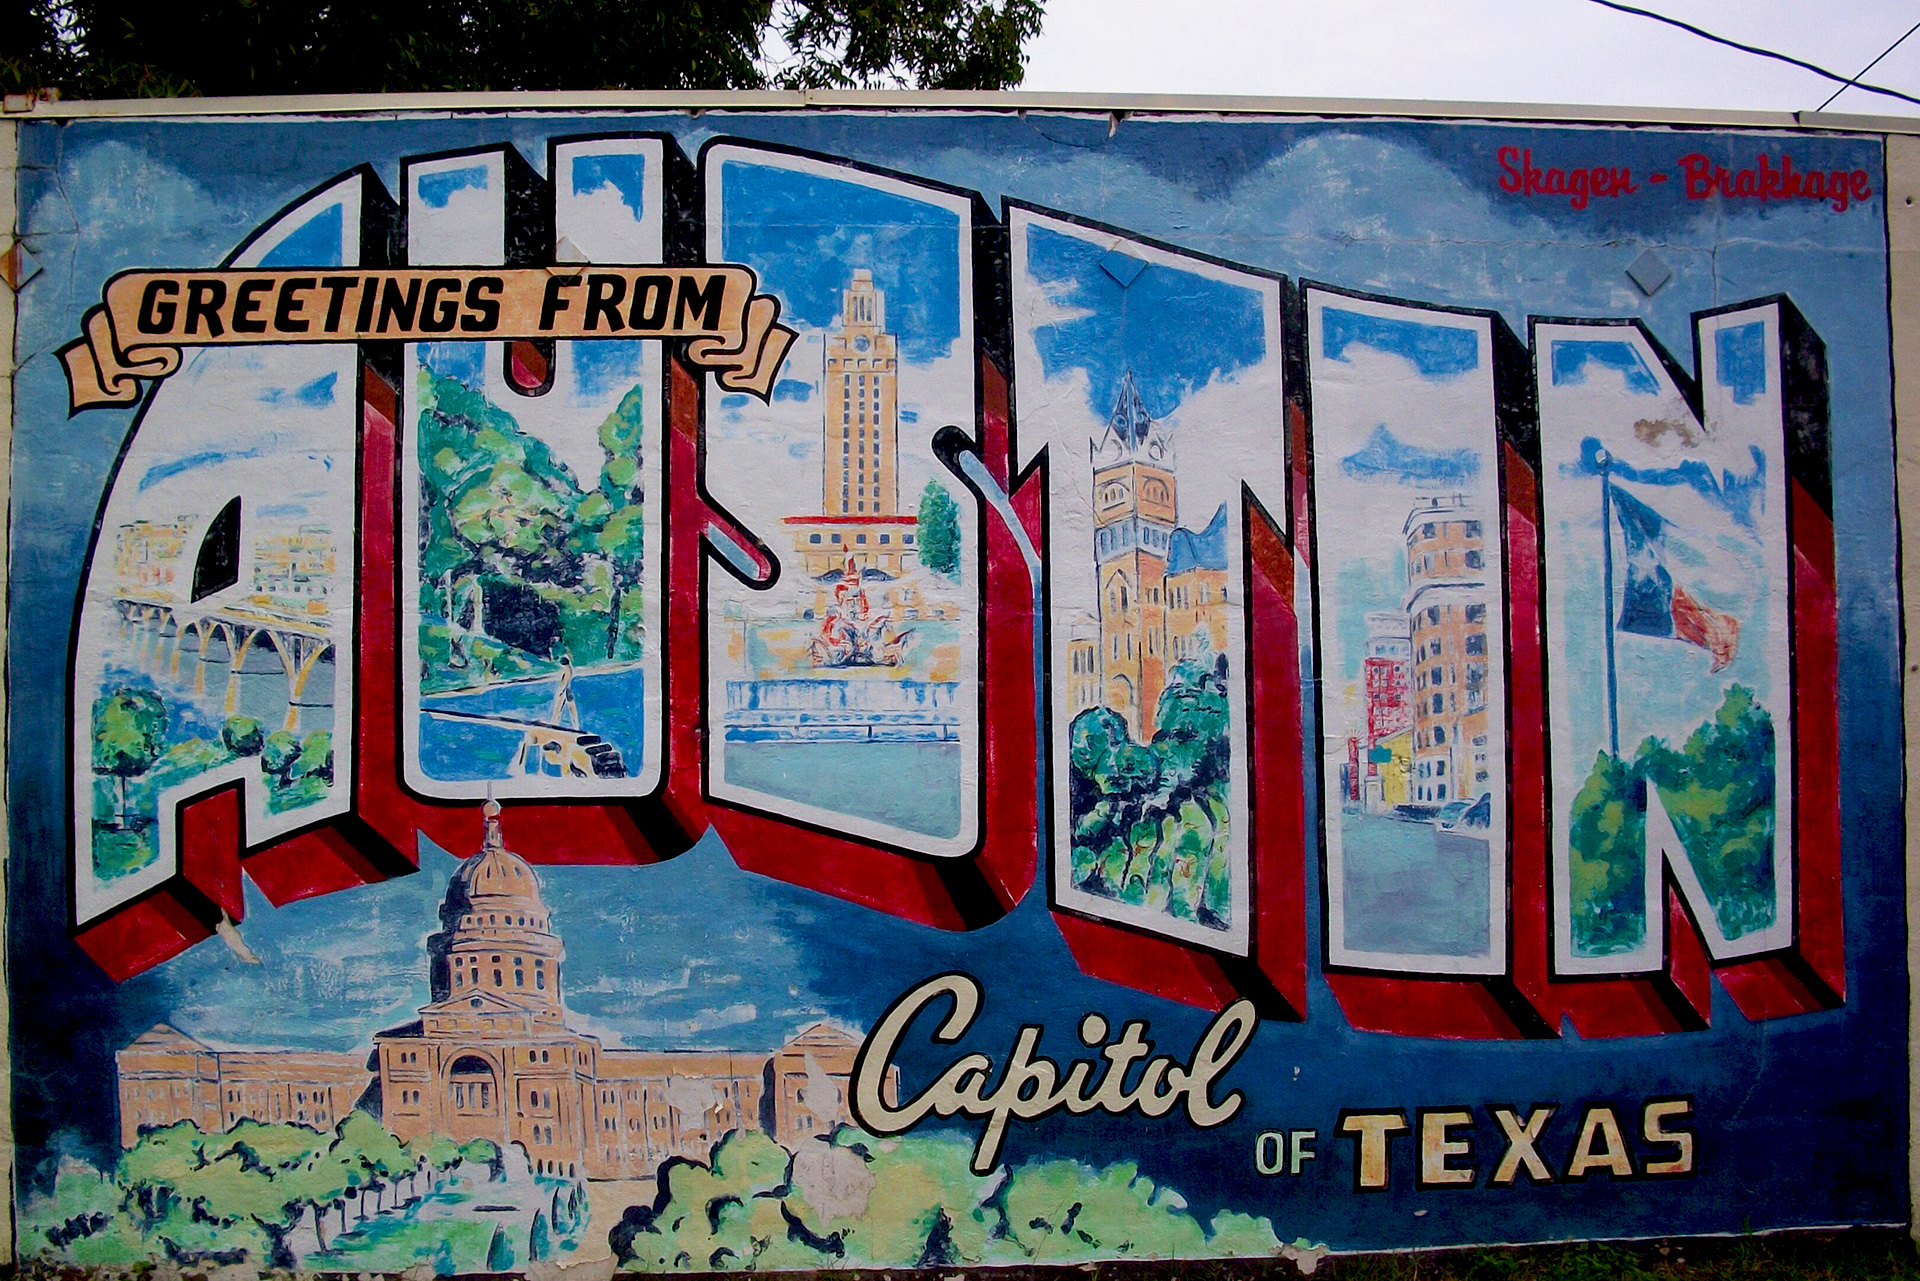 The Greetings From Austin mural on south 1st street